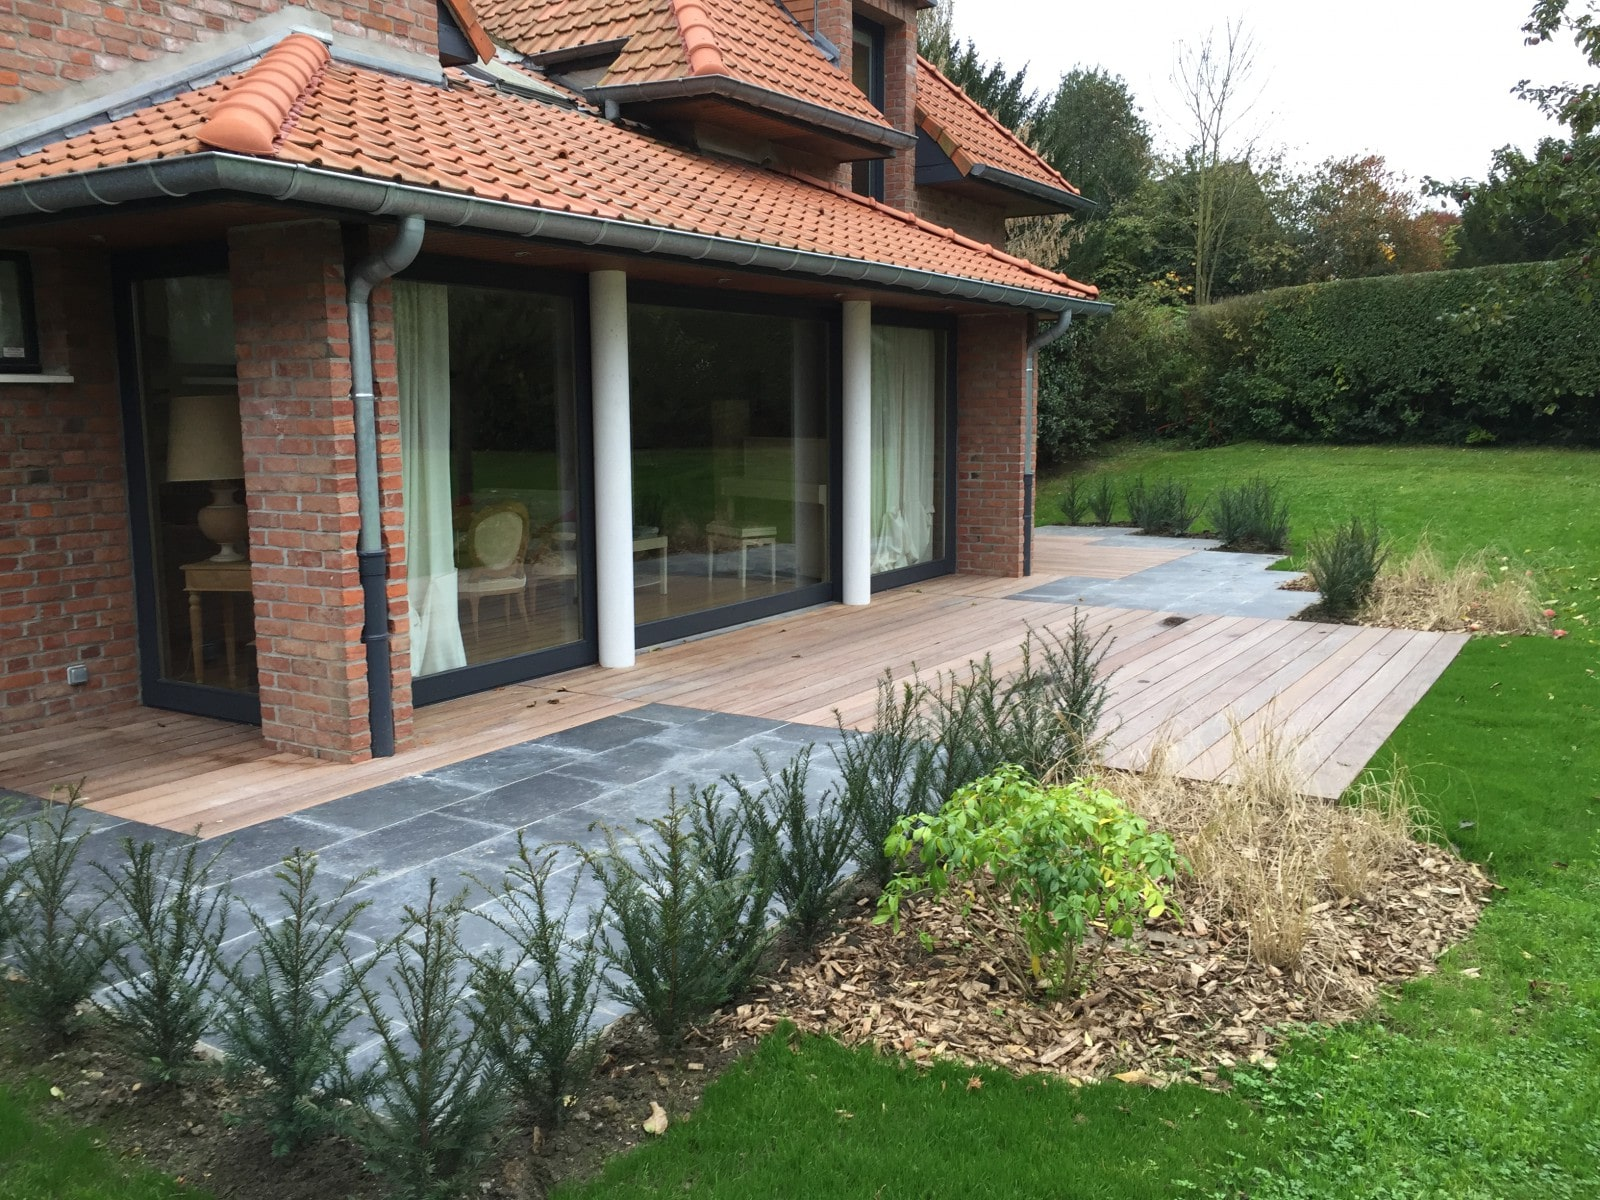 Terrasse bois ardoise for Amenagement exterieur longere